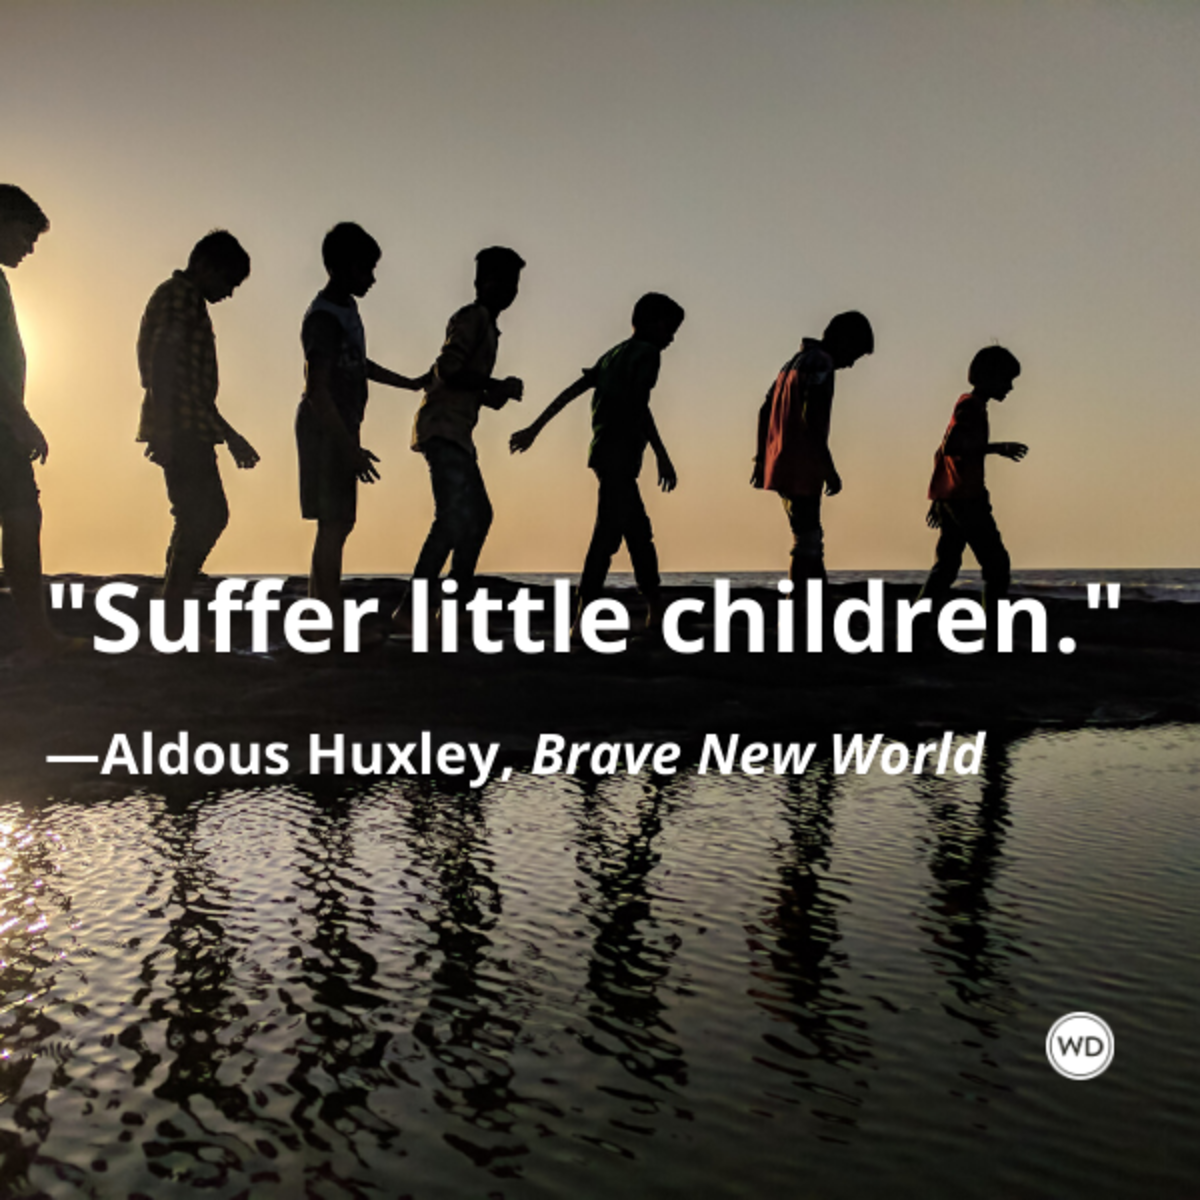 aldous_huxley_brave_new_world_quotes_suffer_little_children